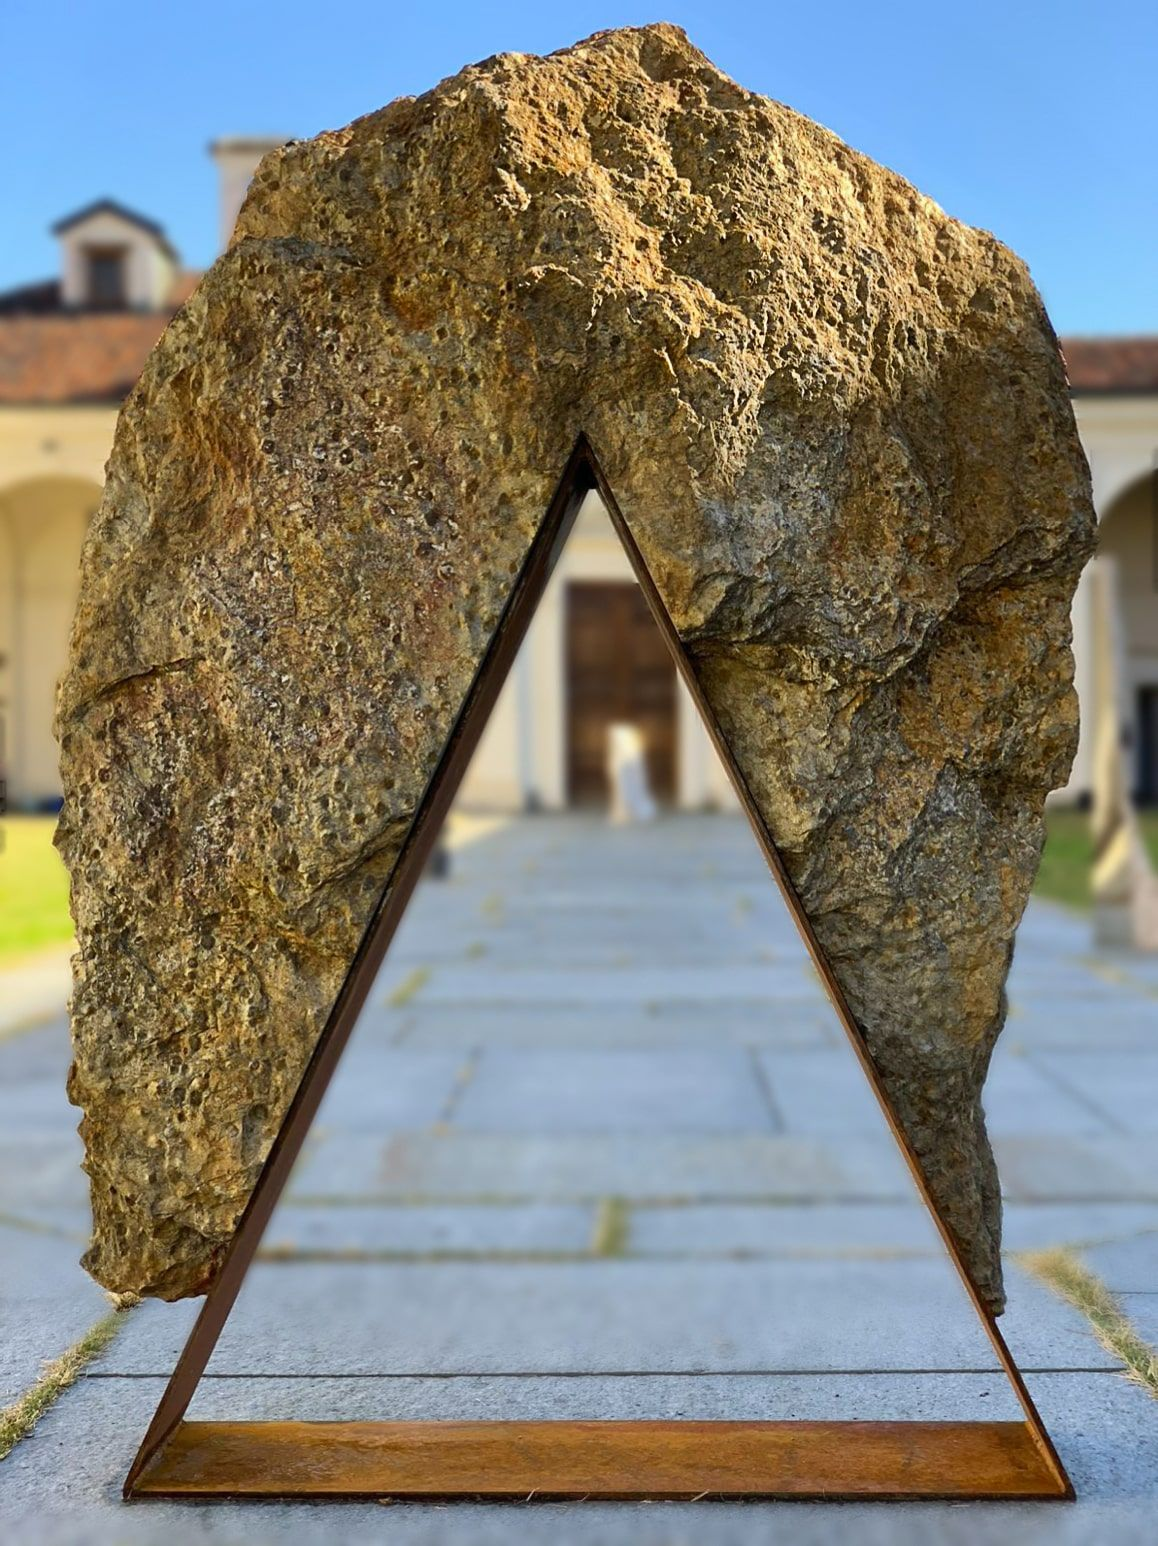 Untitled I, large-size sculpture